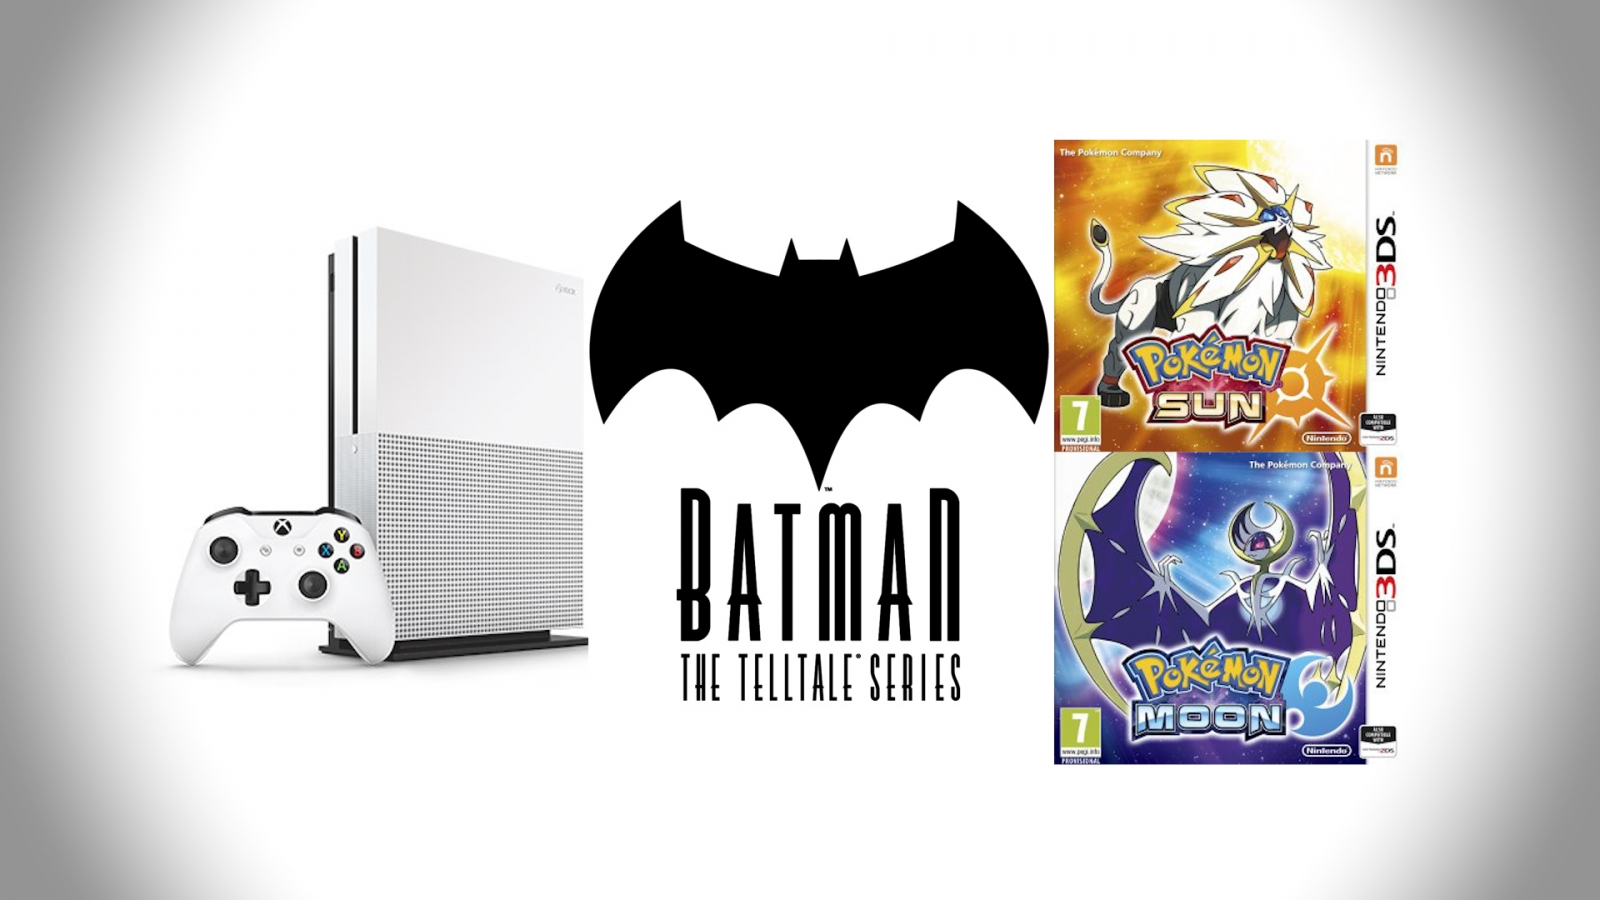 Pokemon Games For Xbox 1 : Video game news round up pokemon xbox one s and batman